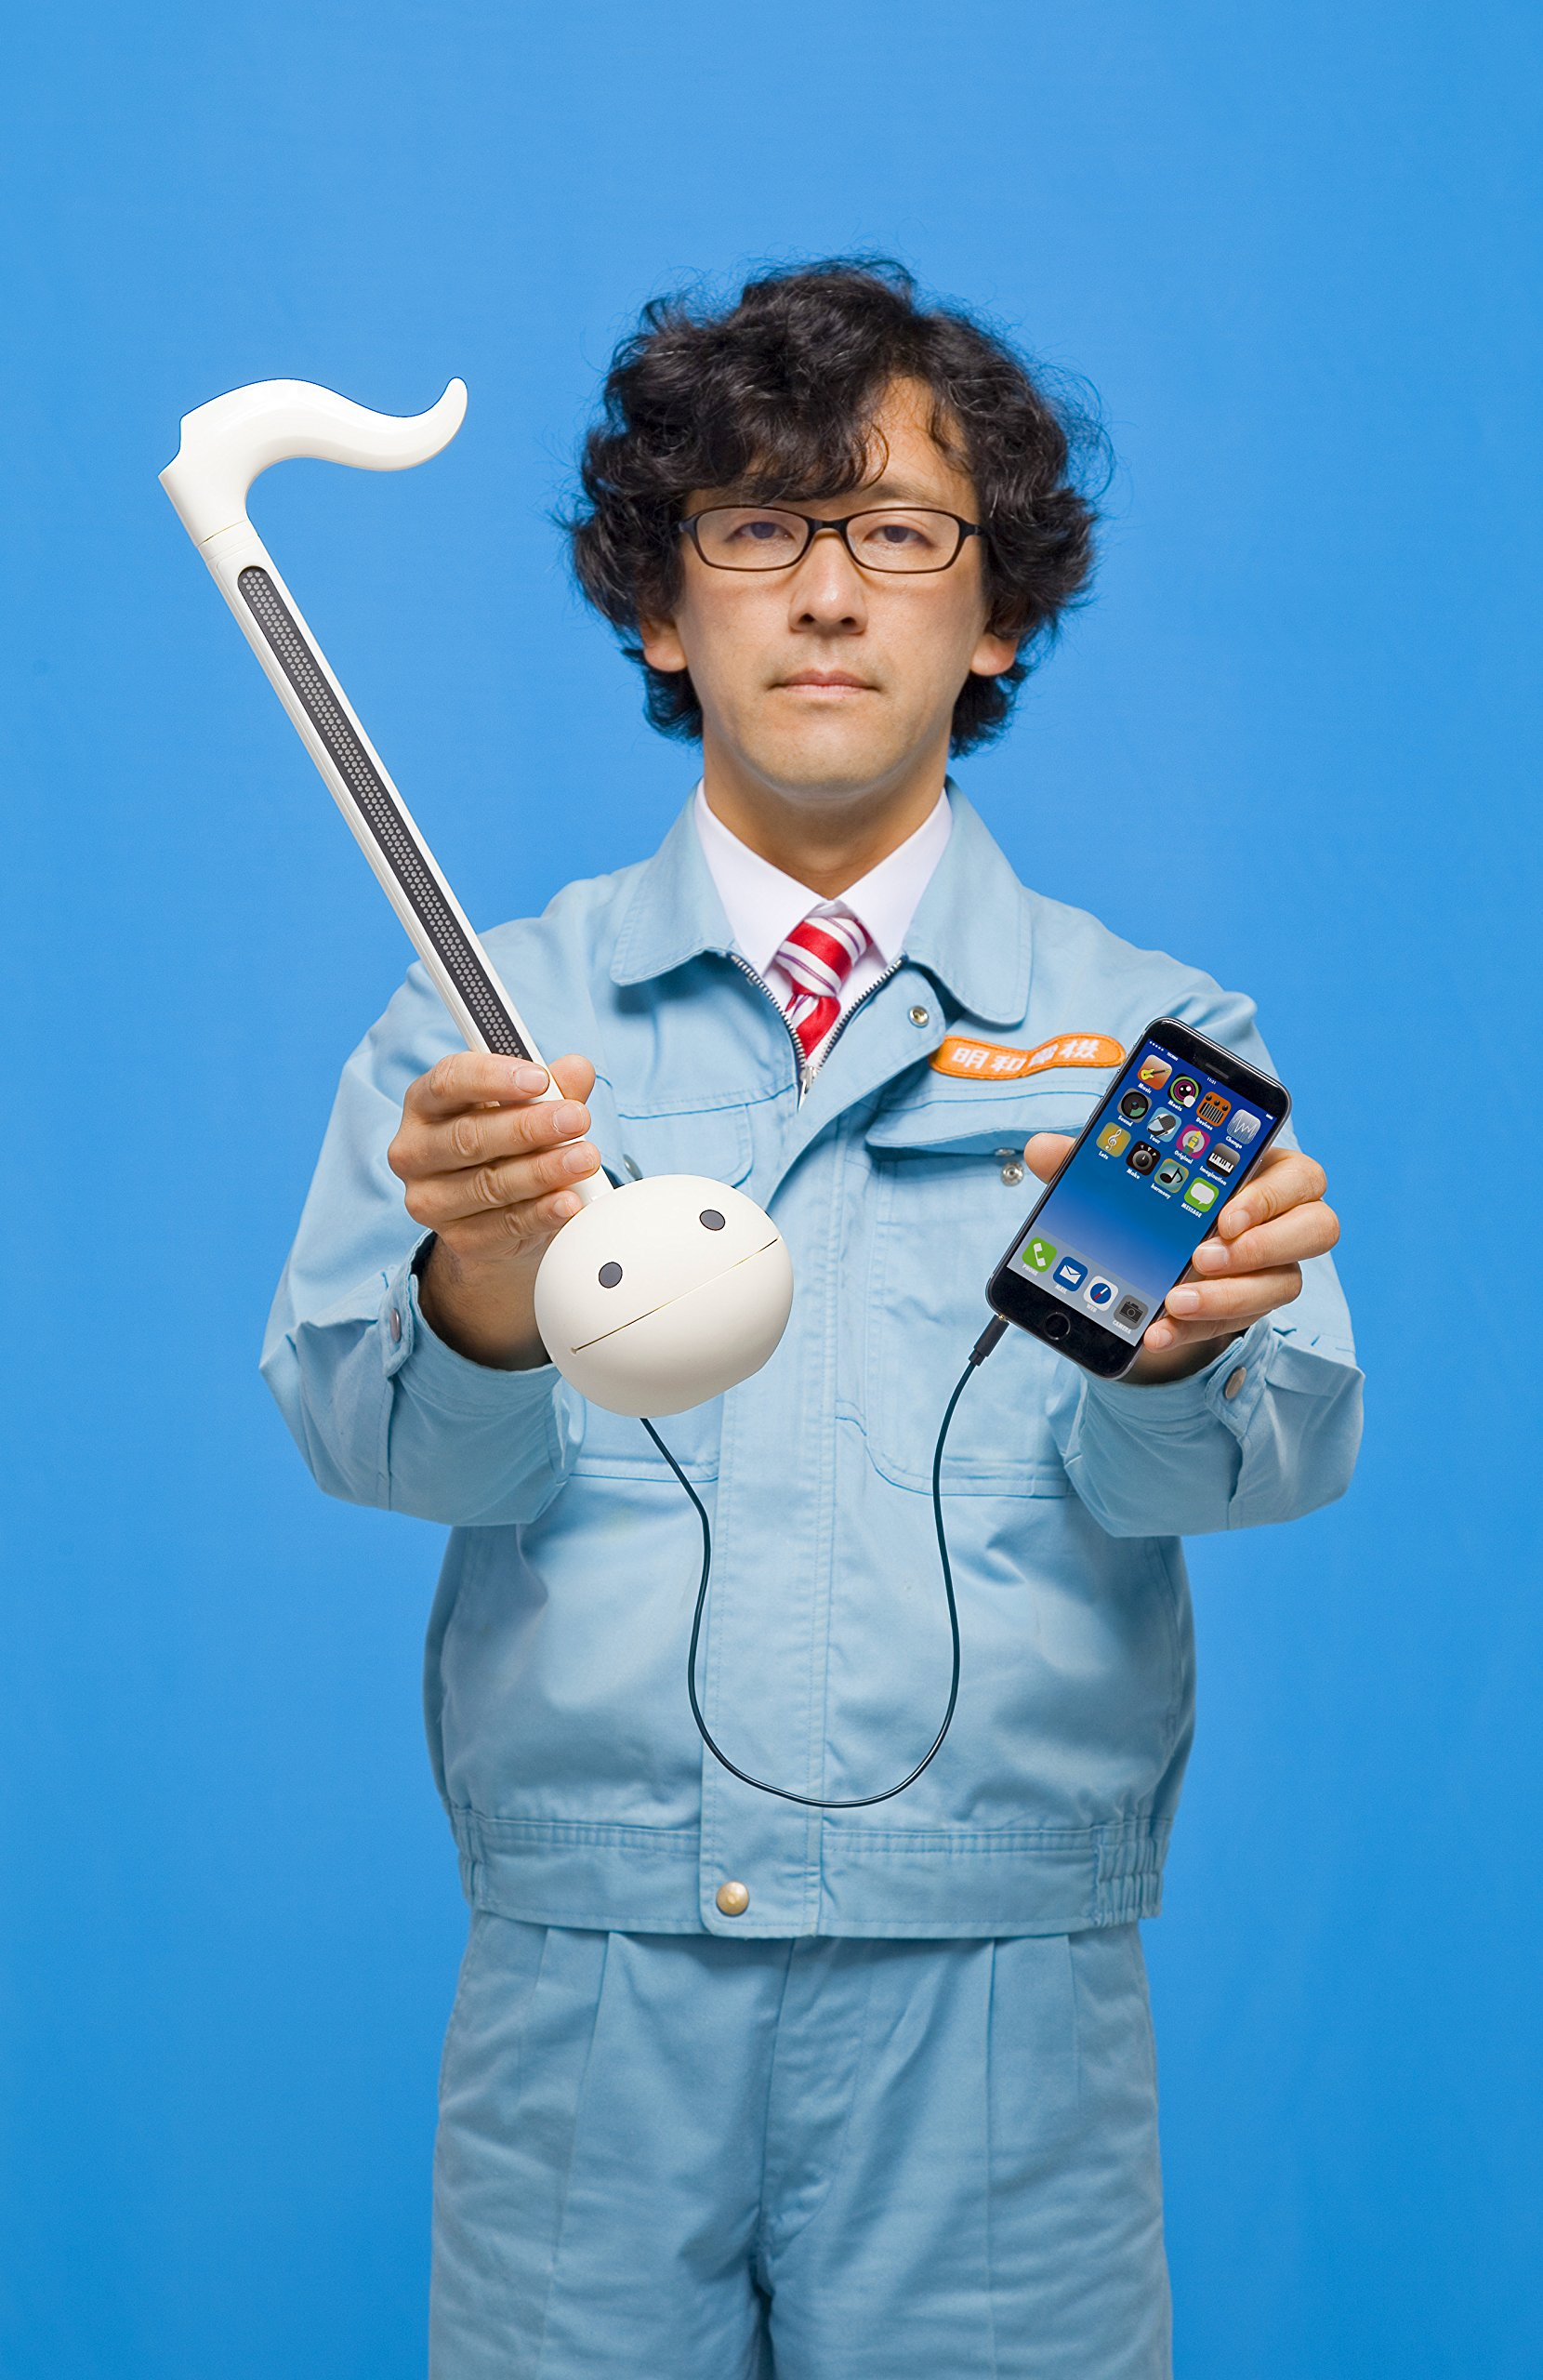 Otamatone Techno Touch-Sensitive Electronic Musical Instrument (White)